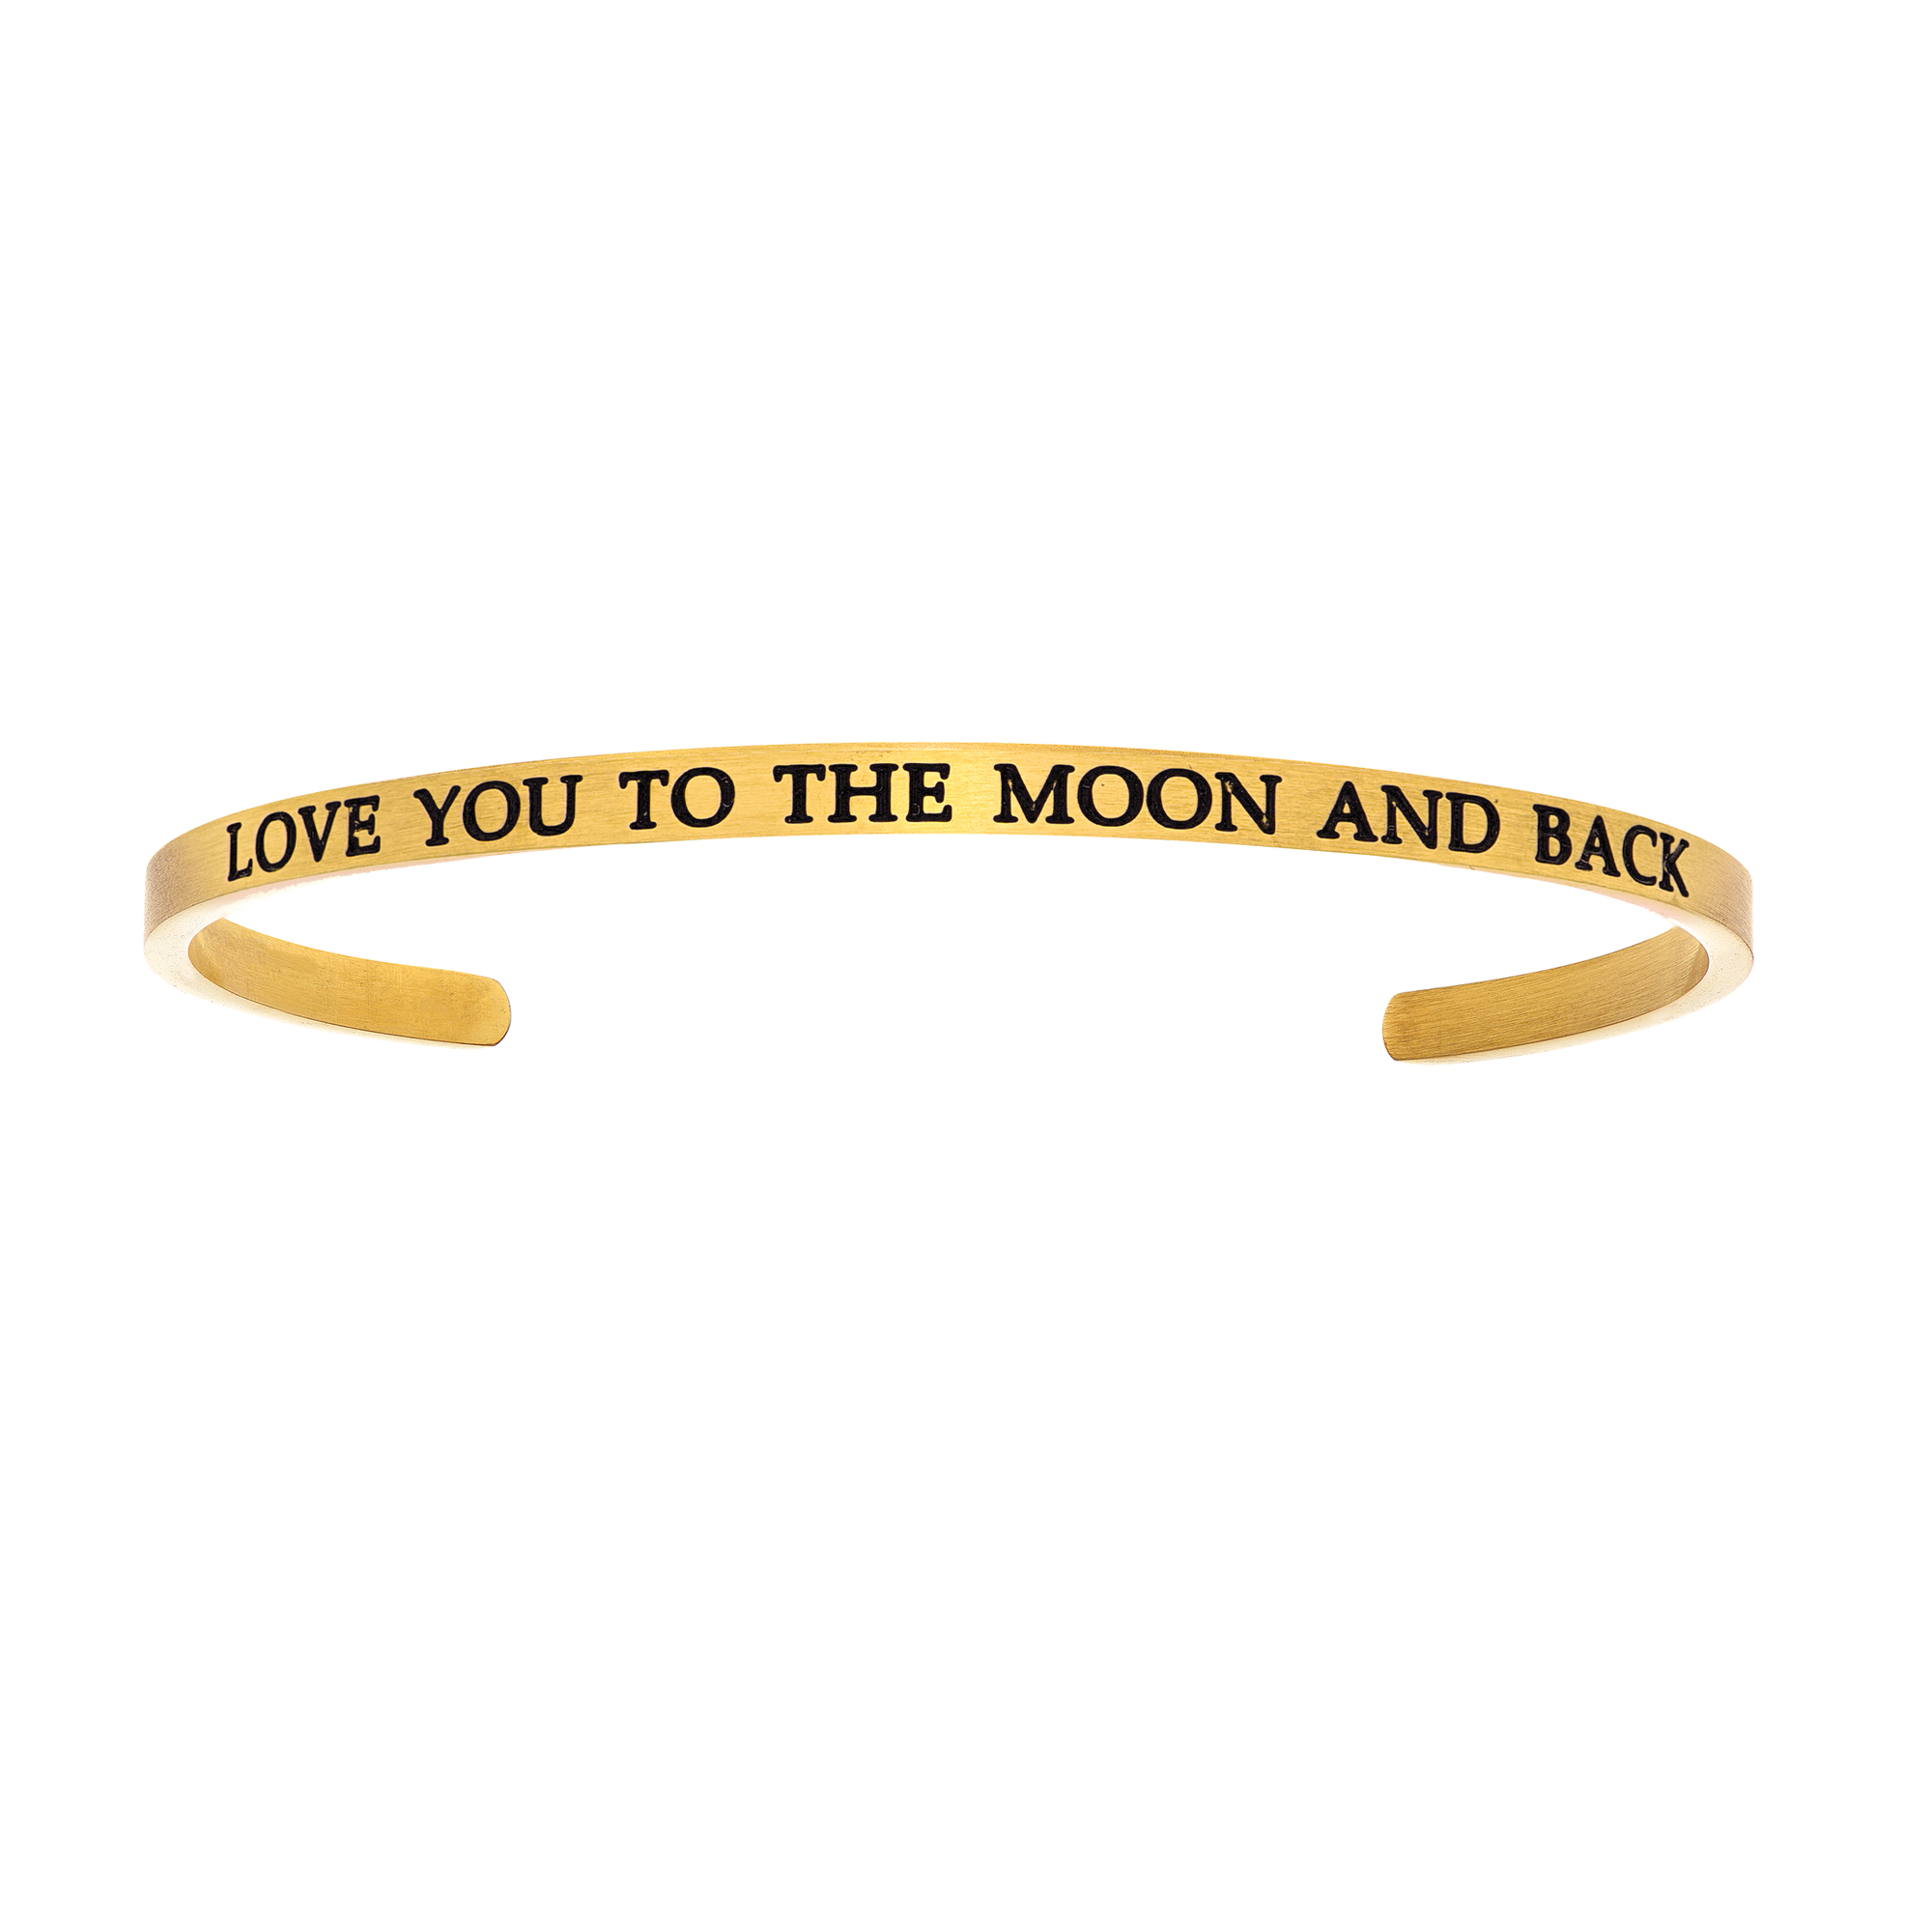 Intuitions Stainless Steel LOVE YOU TO THE MOON AND BACK Diamond Accent Cuff Bangle Bracelet, 7″